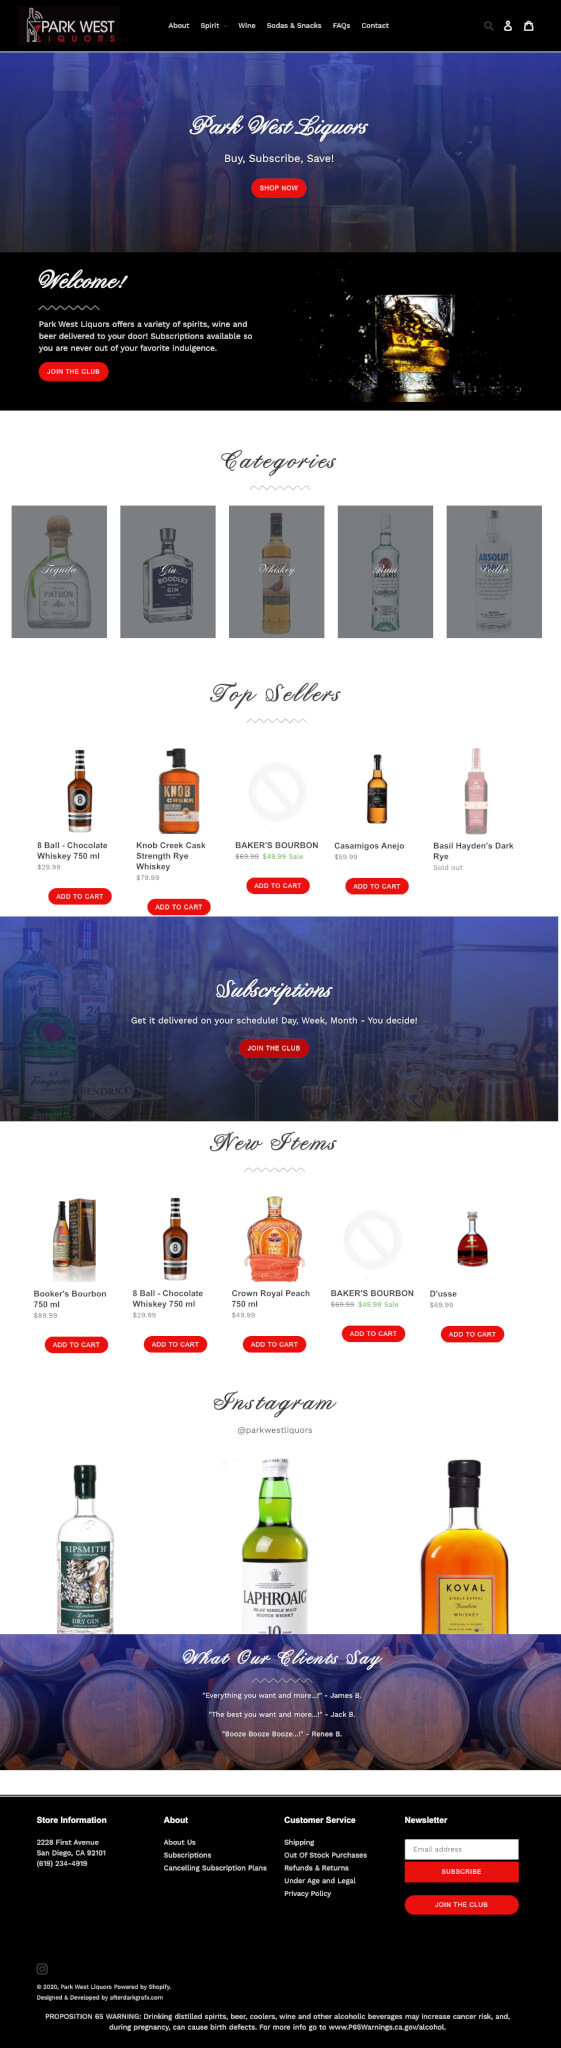 Shopify Designer San Diego - Park West Liquors Website Design Development